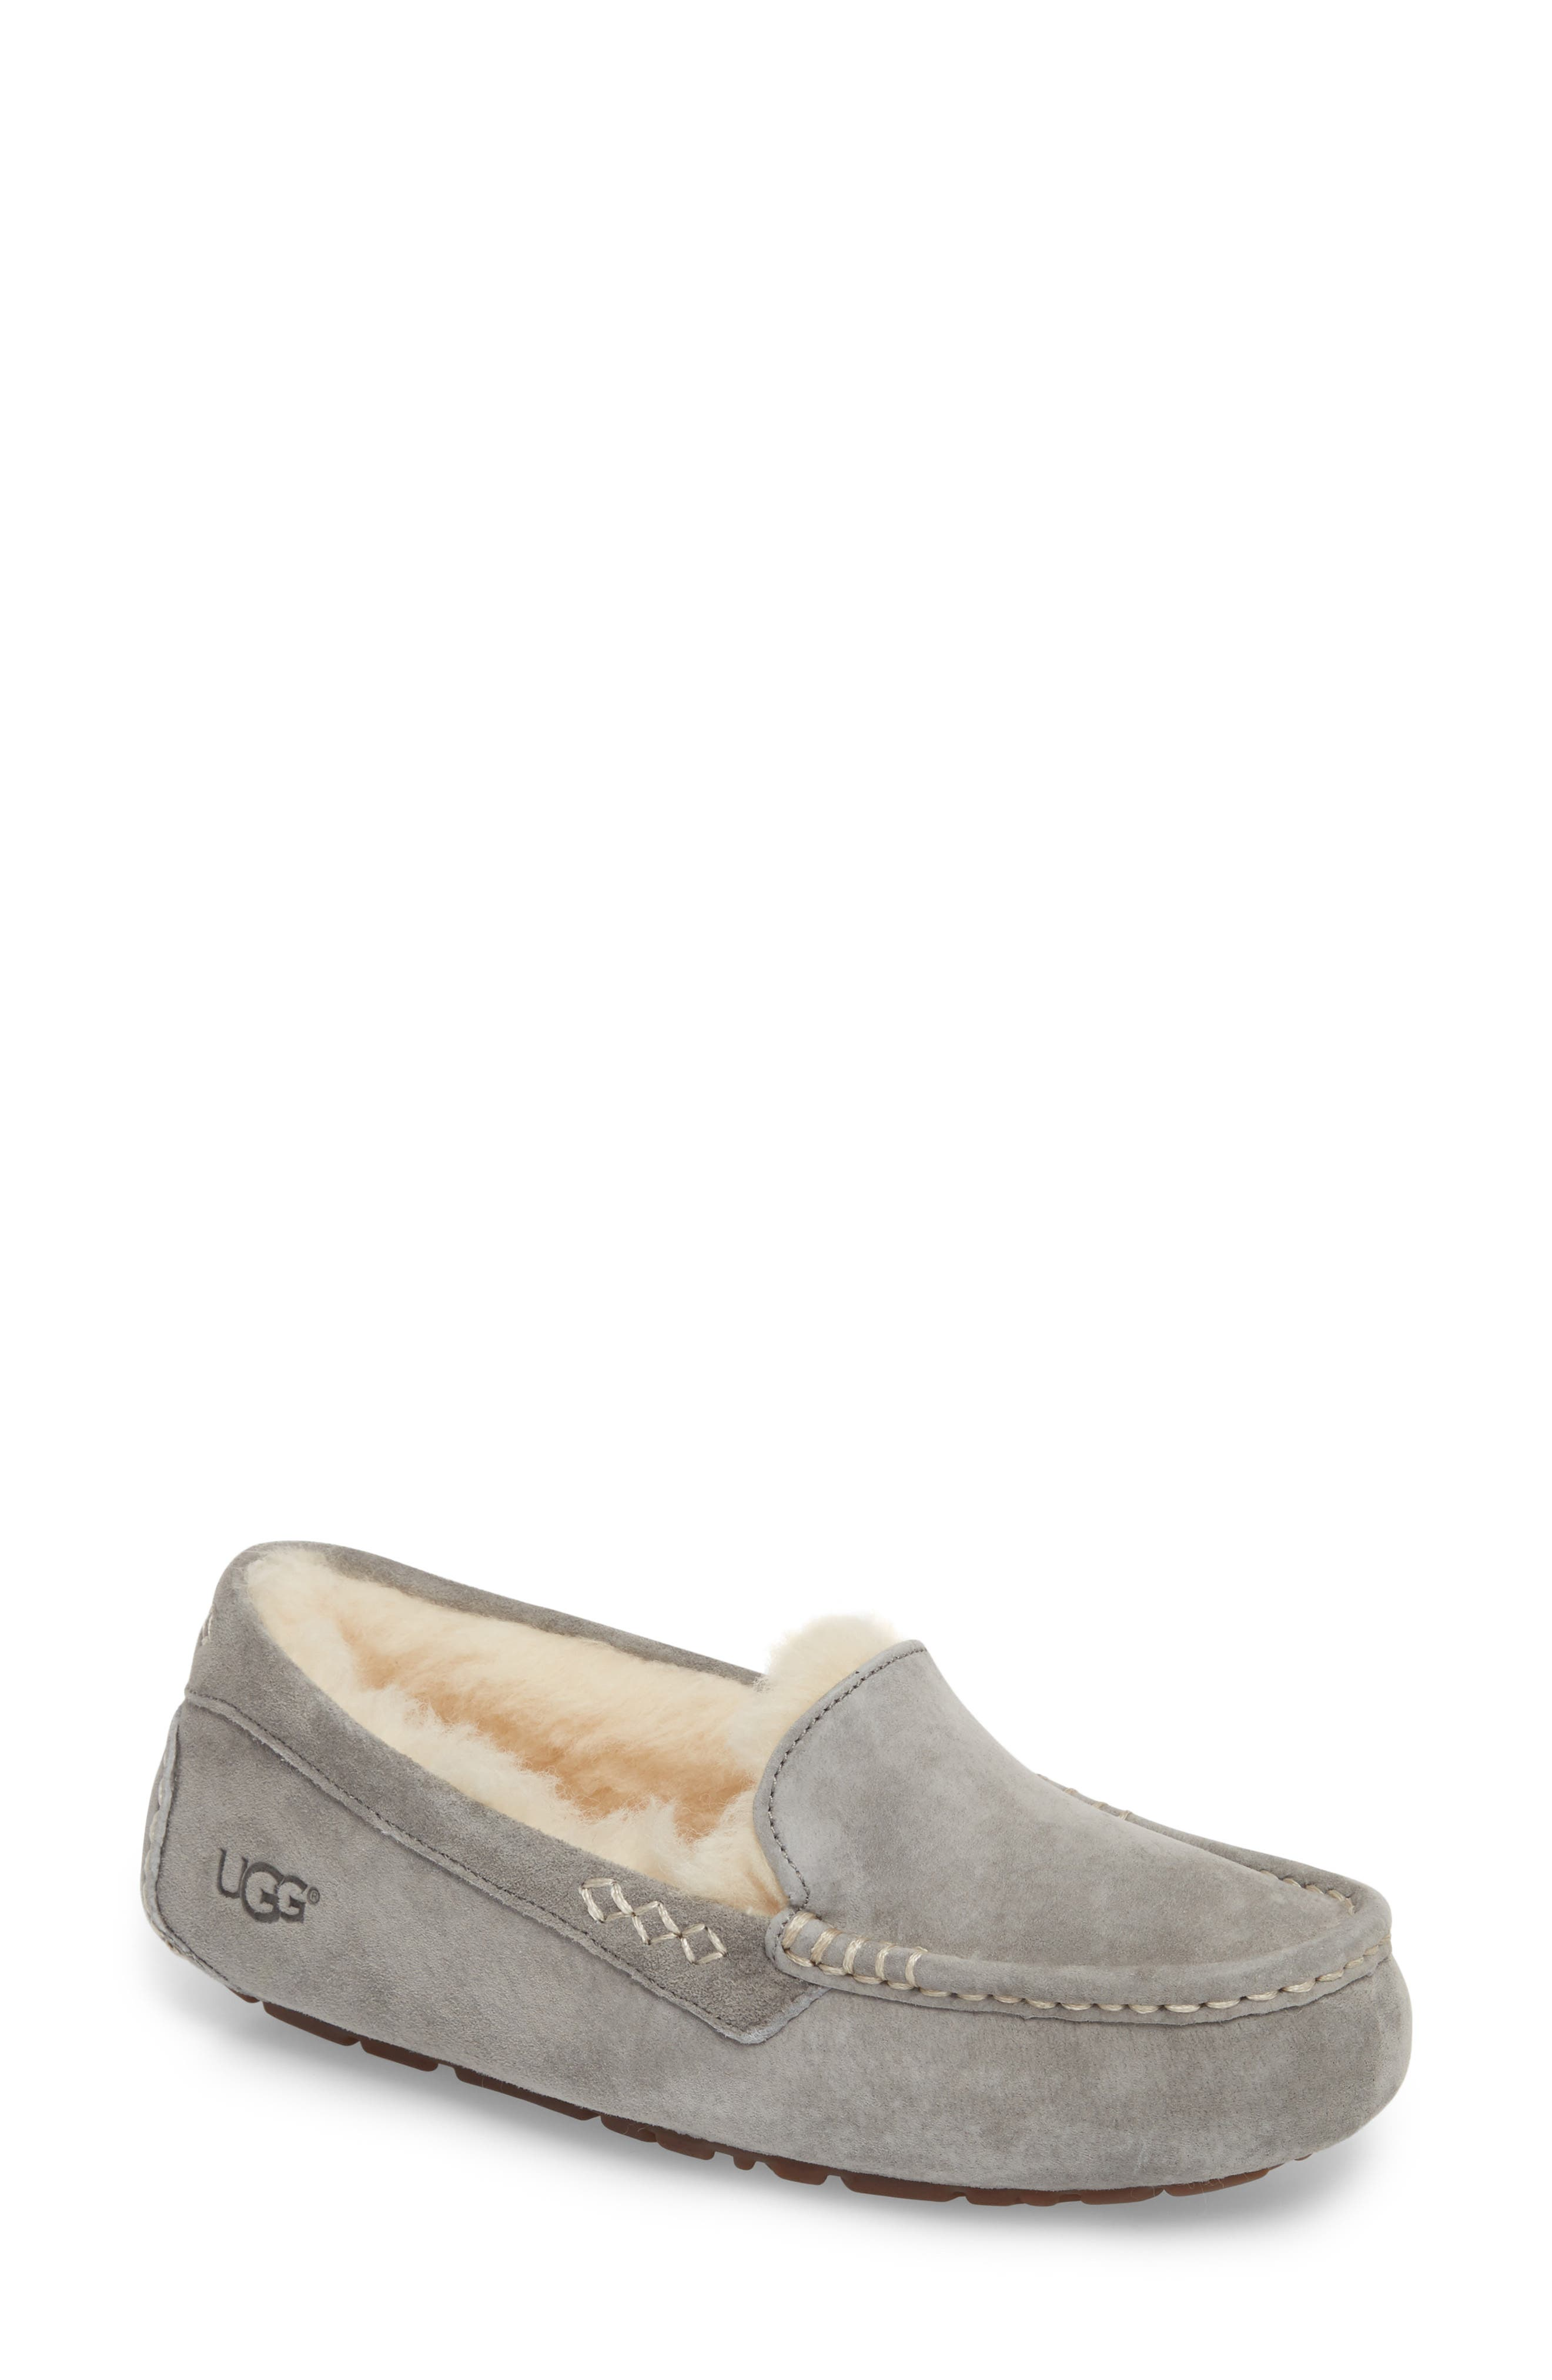 Ugg Ansley Water Resistant Slipper, Grey